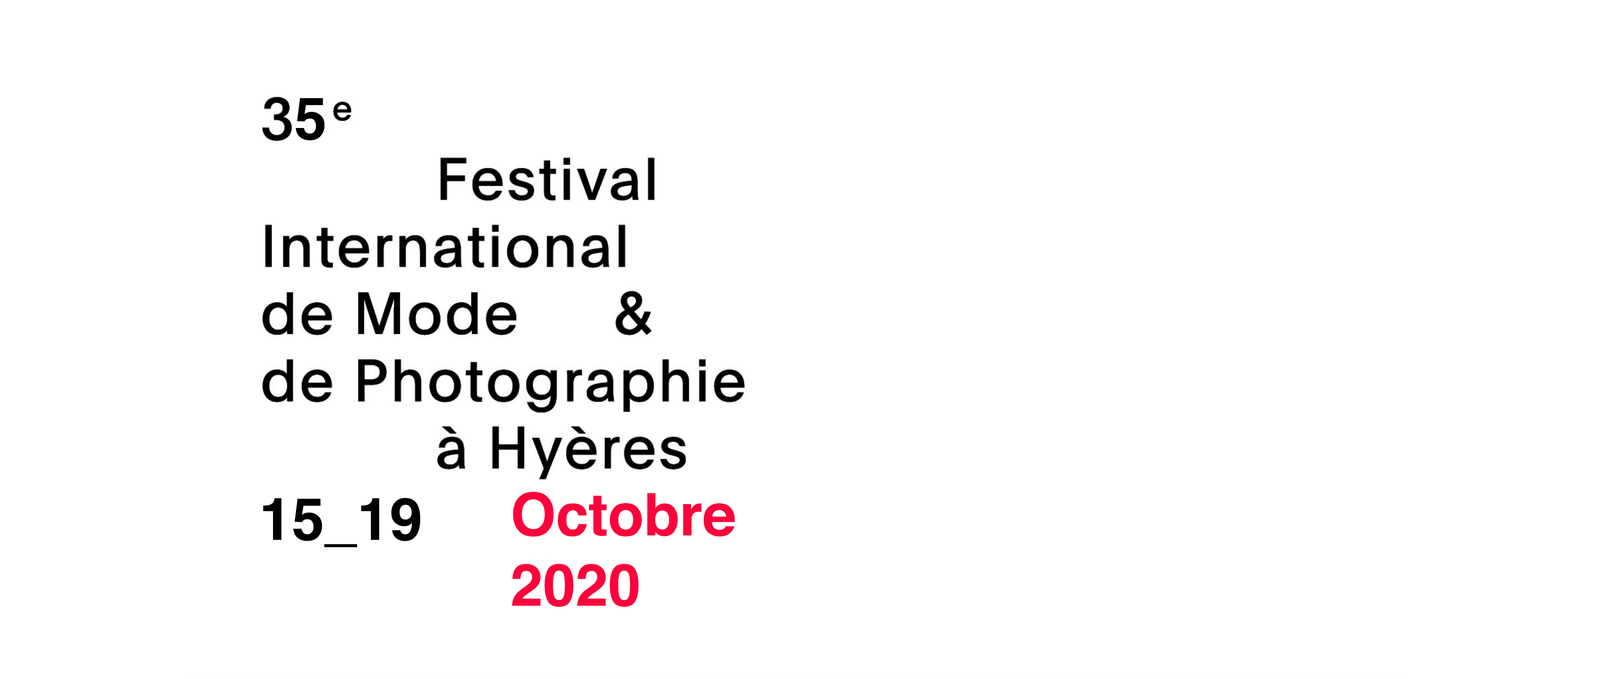 FESTIVAL DE HYERES - NEW OFFICIAL DATES  15-19 OCTOBER 2020